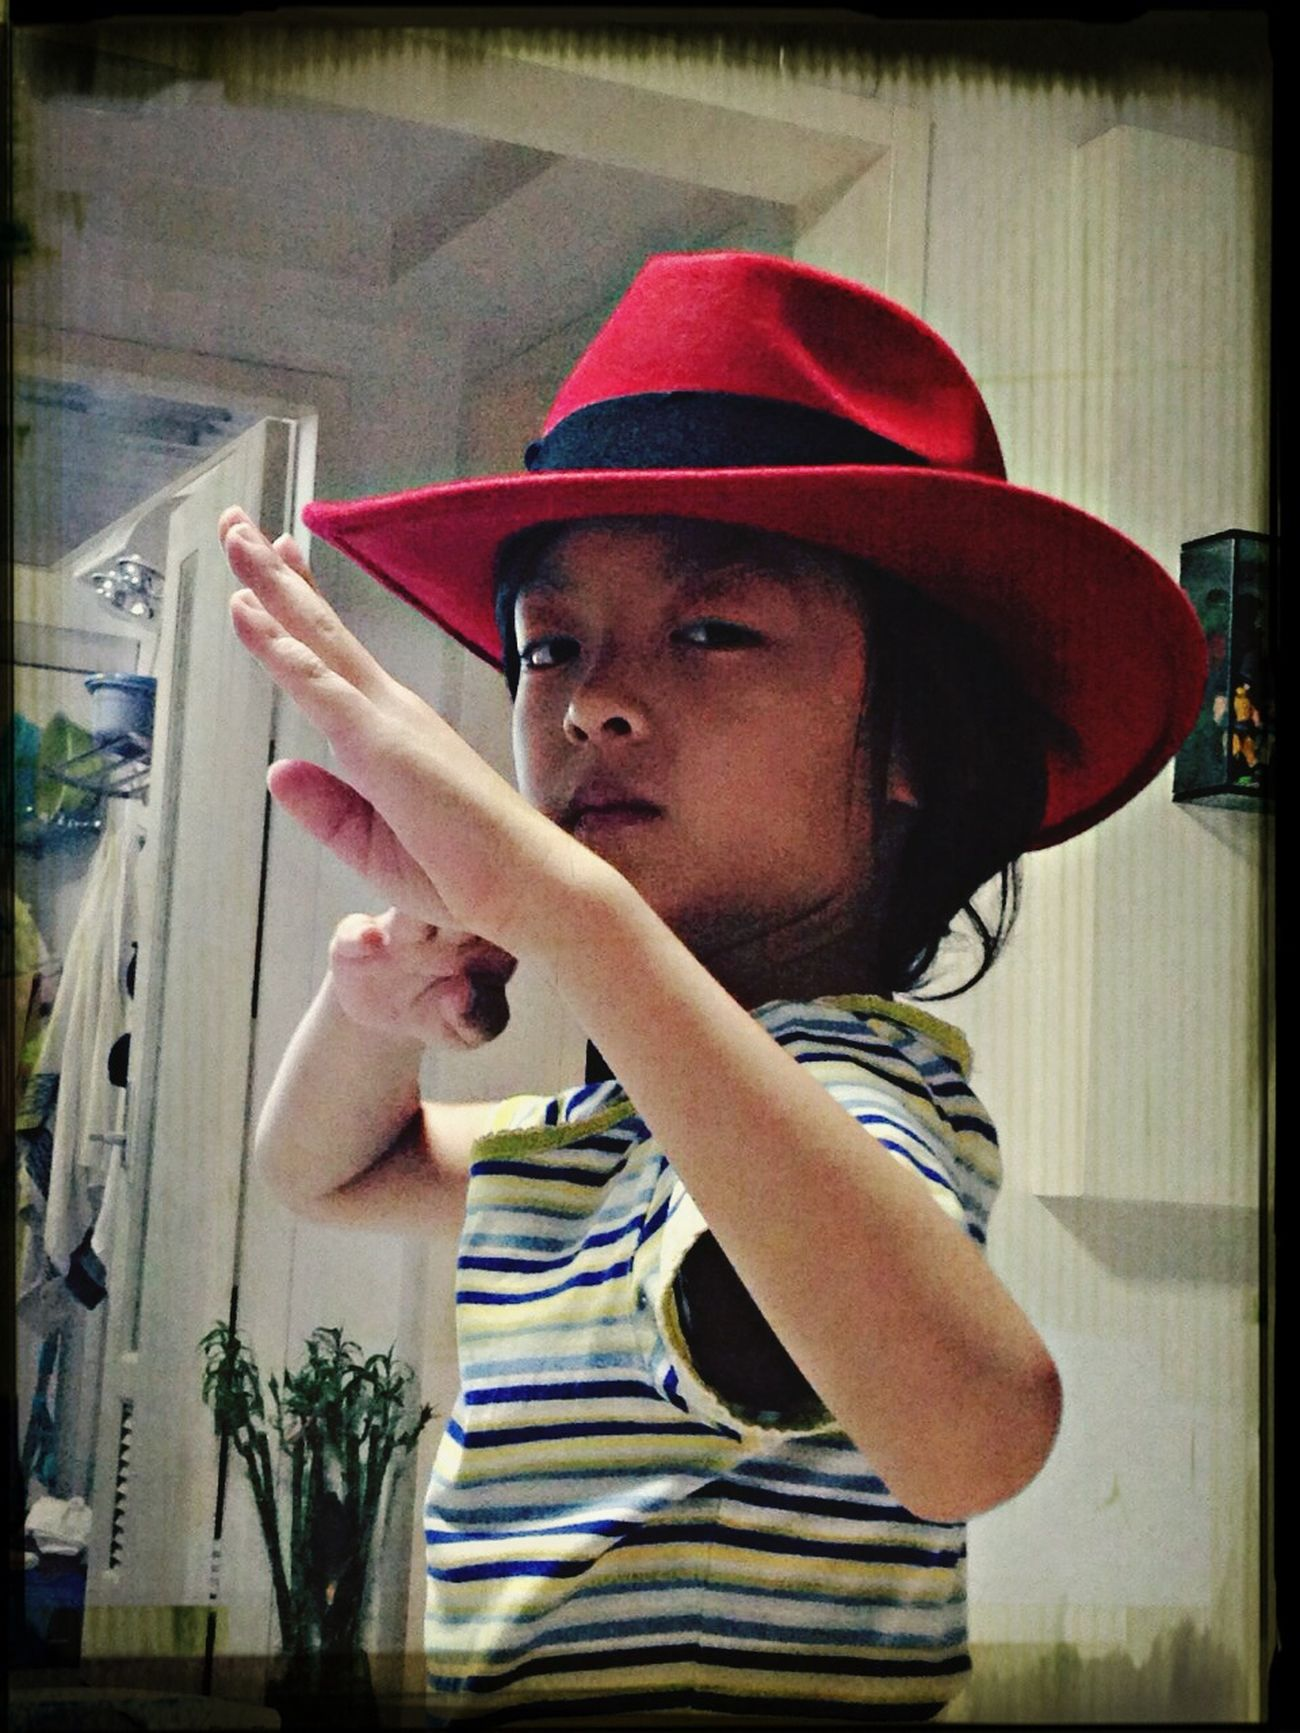 JQ with his Red Fedora